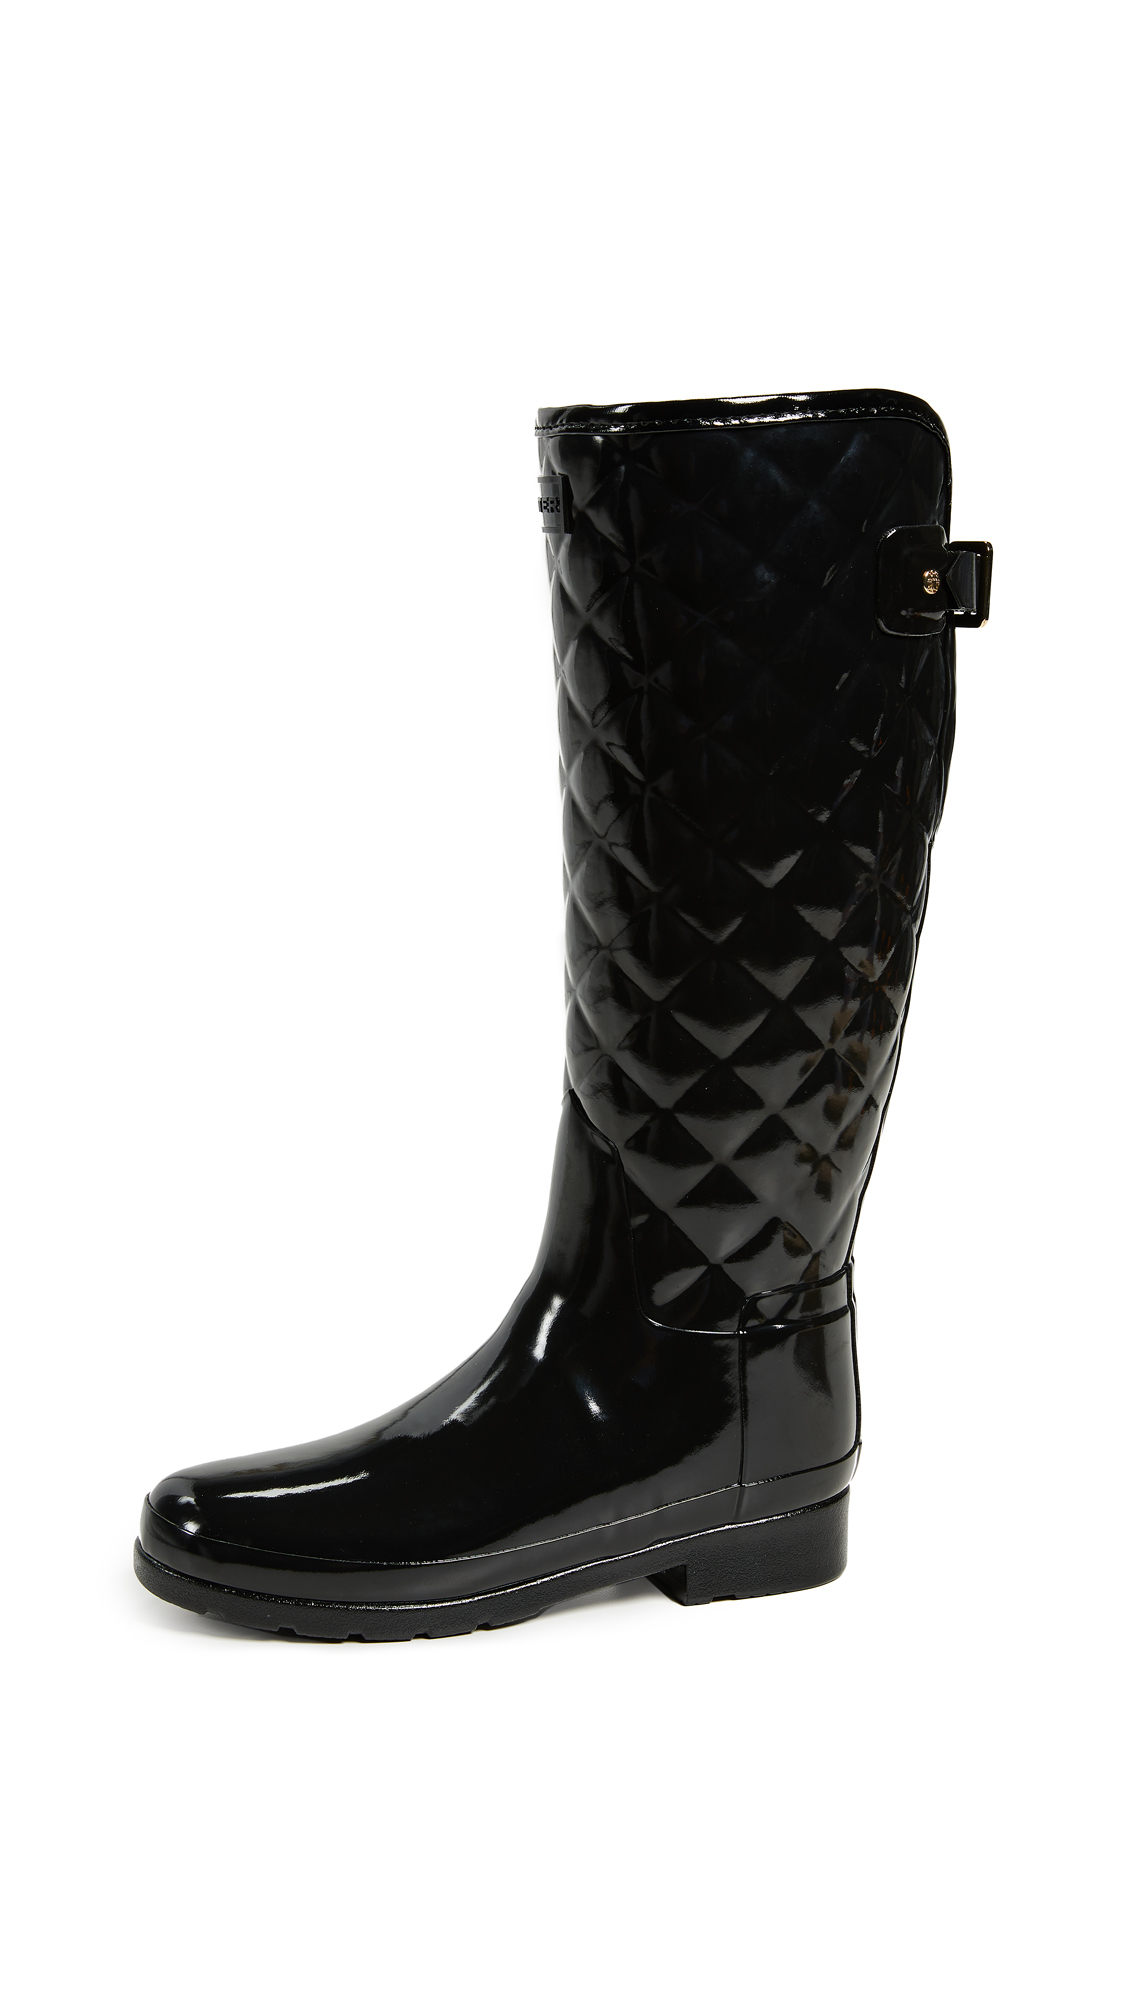 Hunter Boots Refined Gloss Quilt Tall Boots - Black